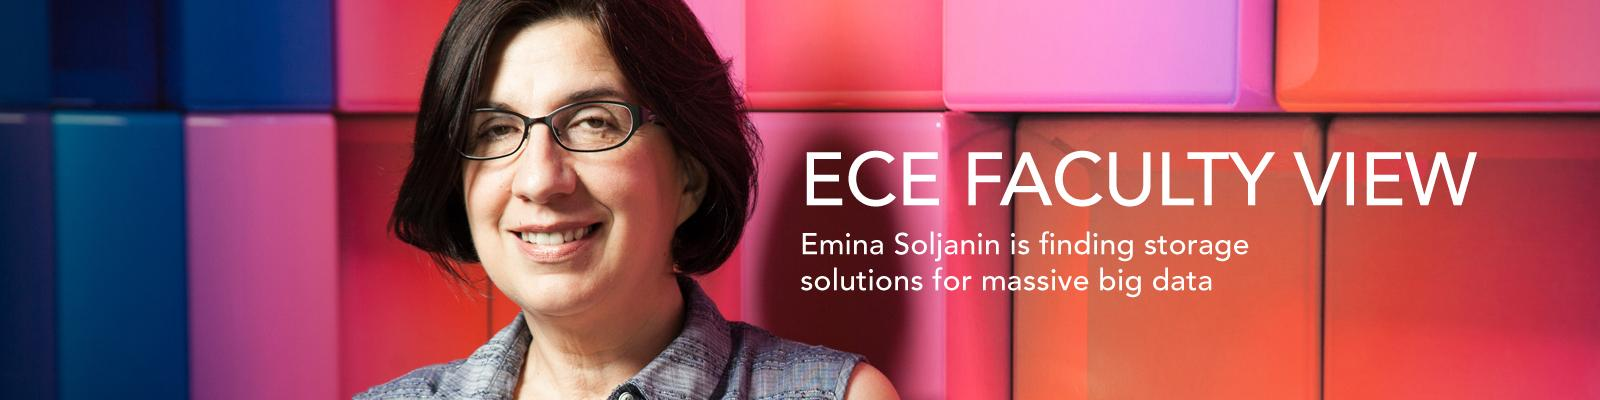 ECE Faculty View: Emina Soljanin is finding storage solutions for massive big data